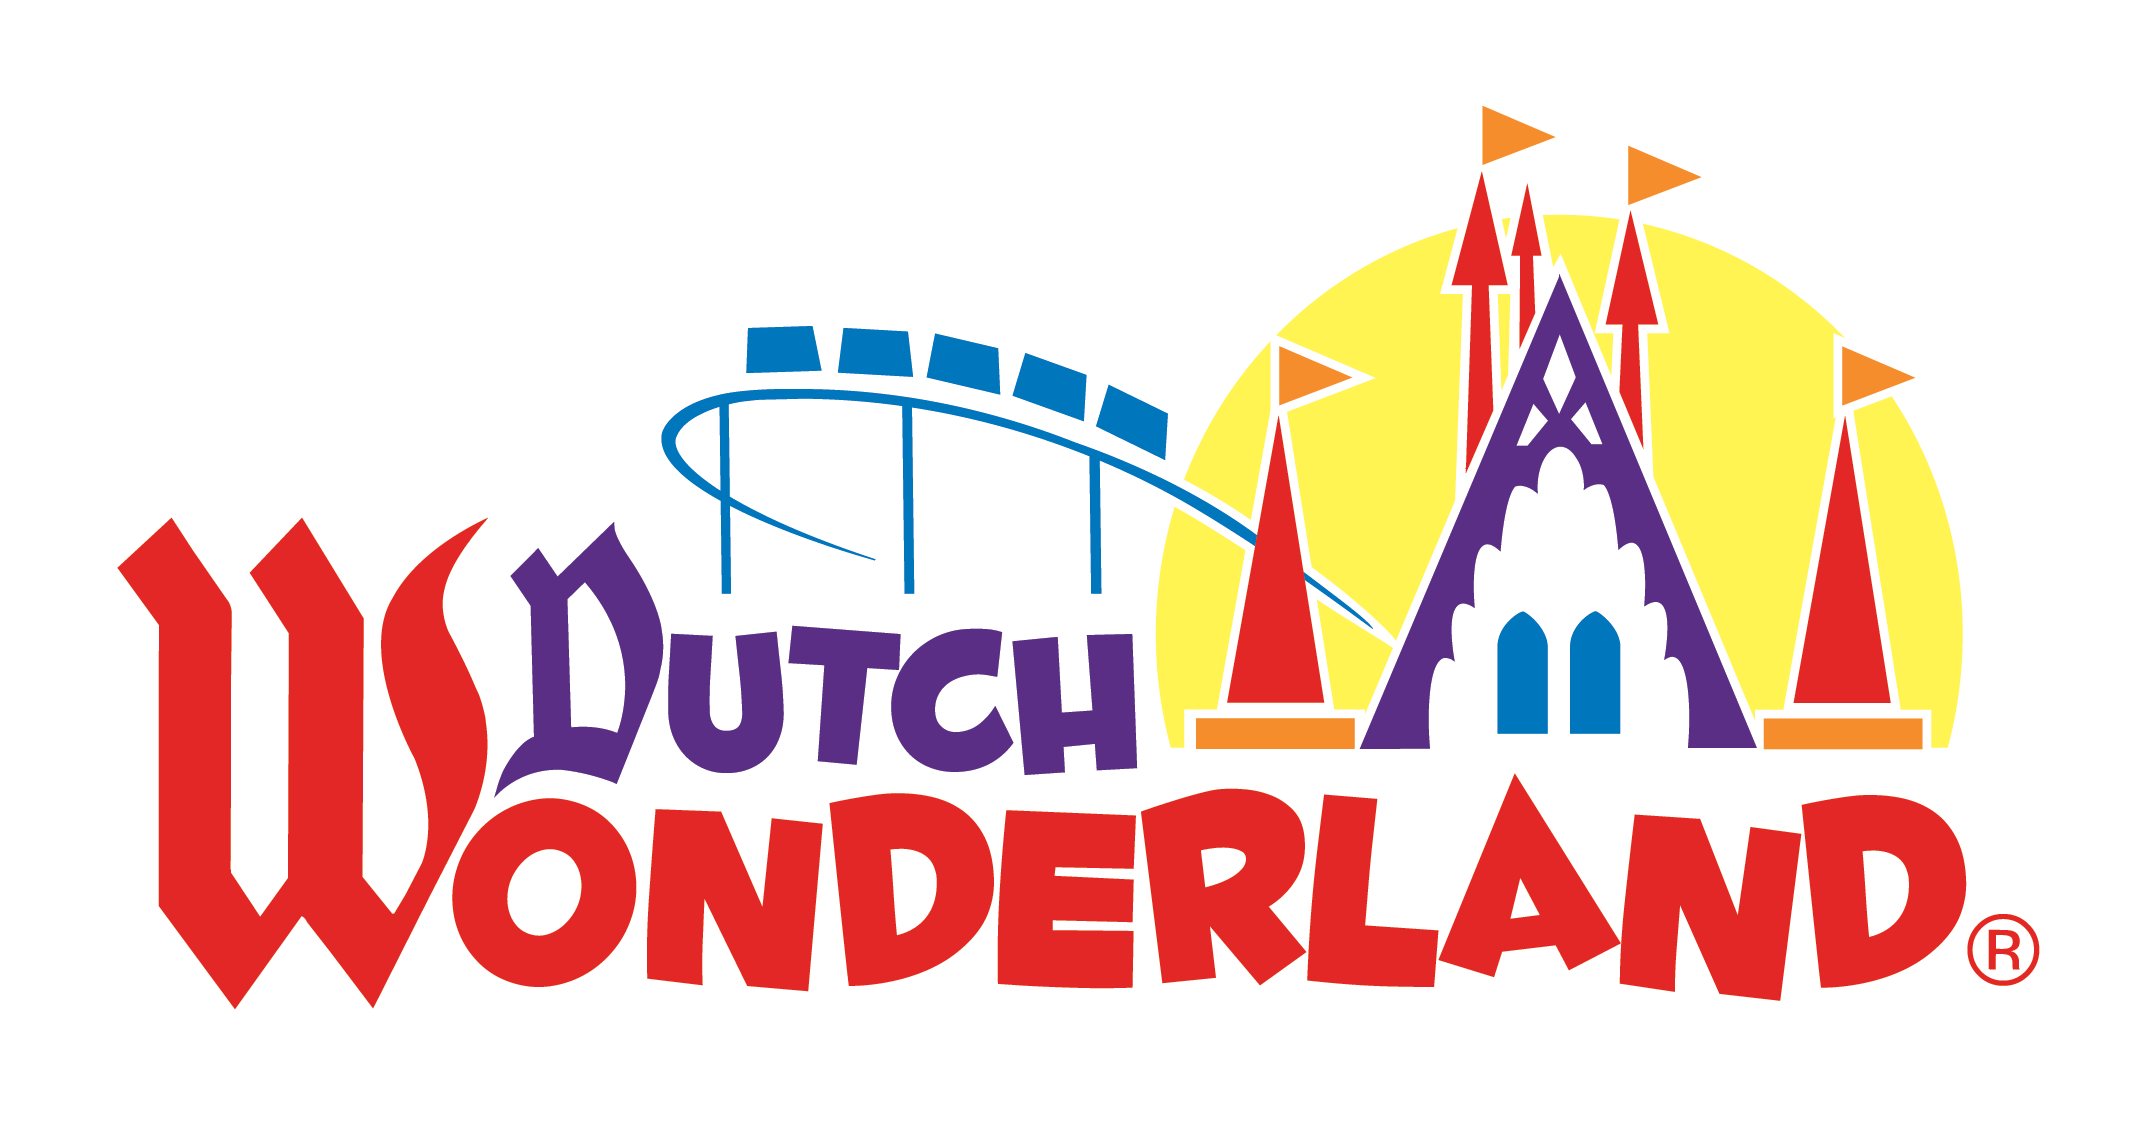 Win Dutch Wonderland Tickets for the 2019 Season!